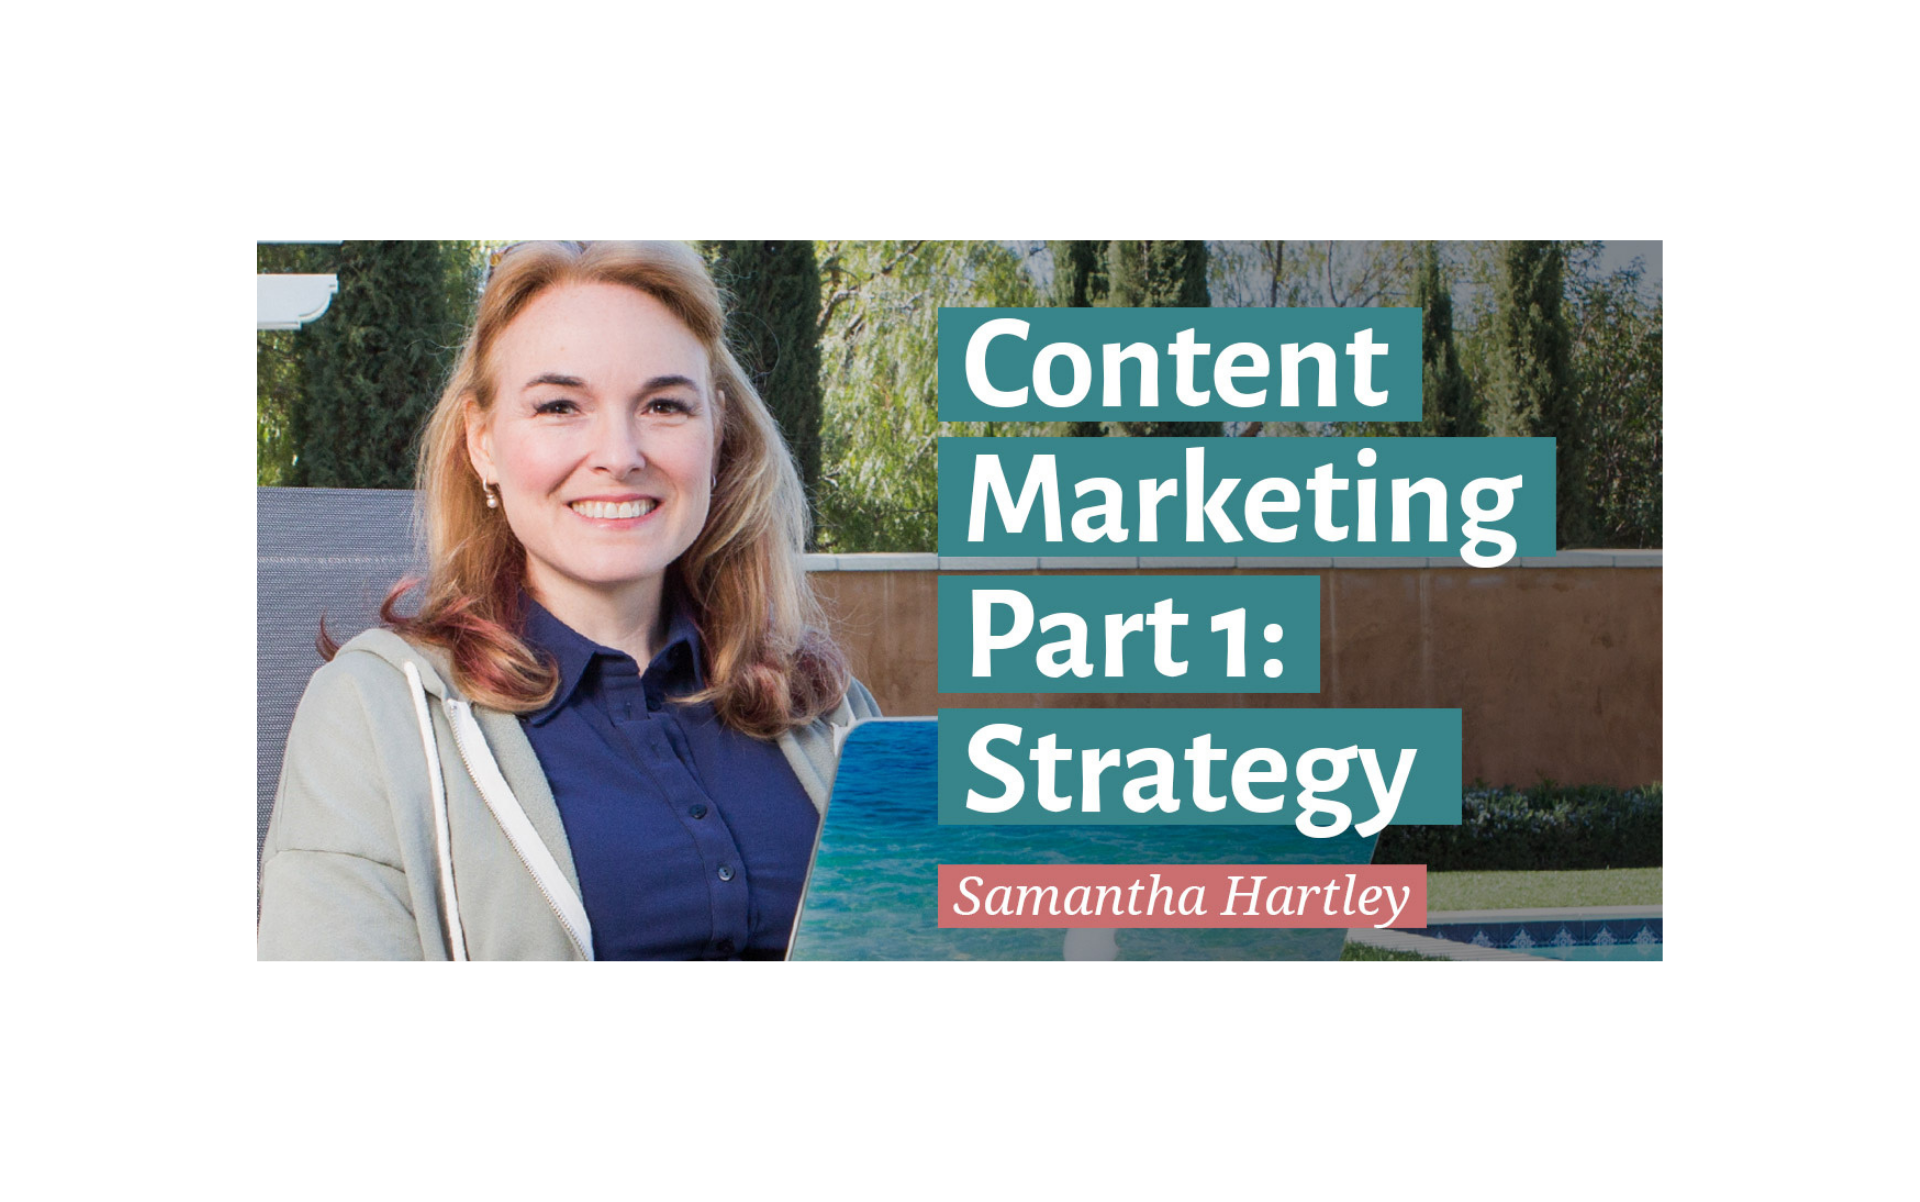 Content Marketing Part 1: Strategy